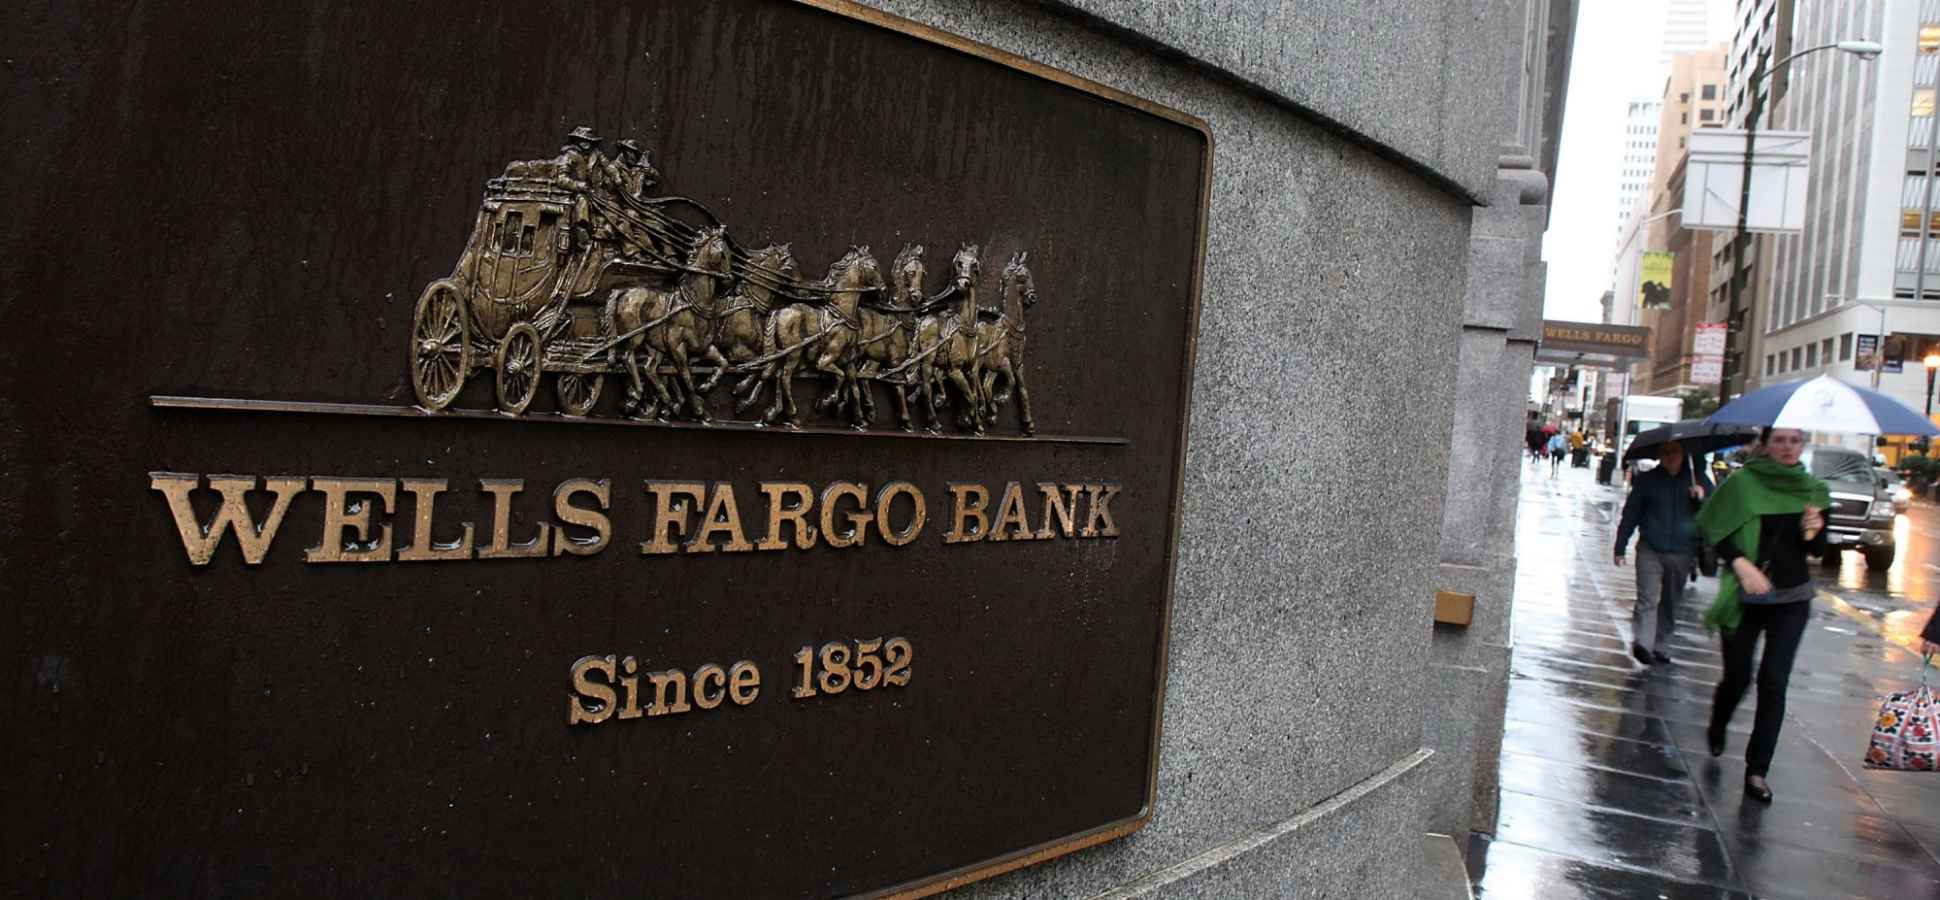 How Could 5,000 Employees Cheat? The Science Behind the Wells Fargo Scandal